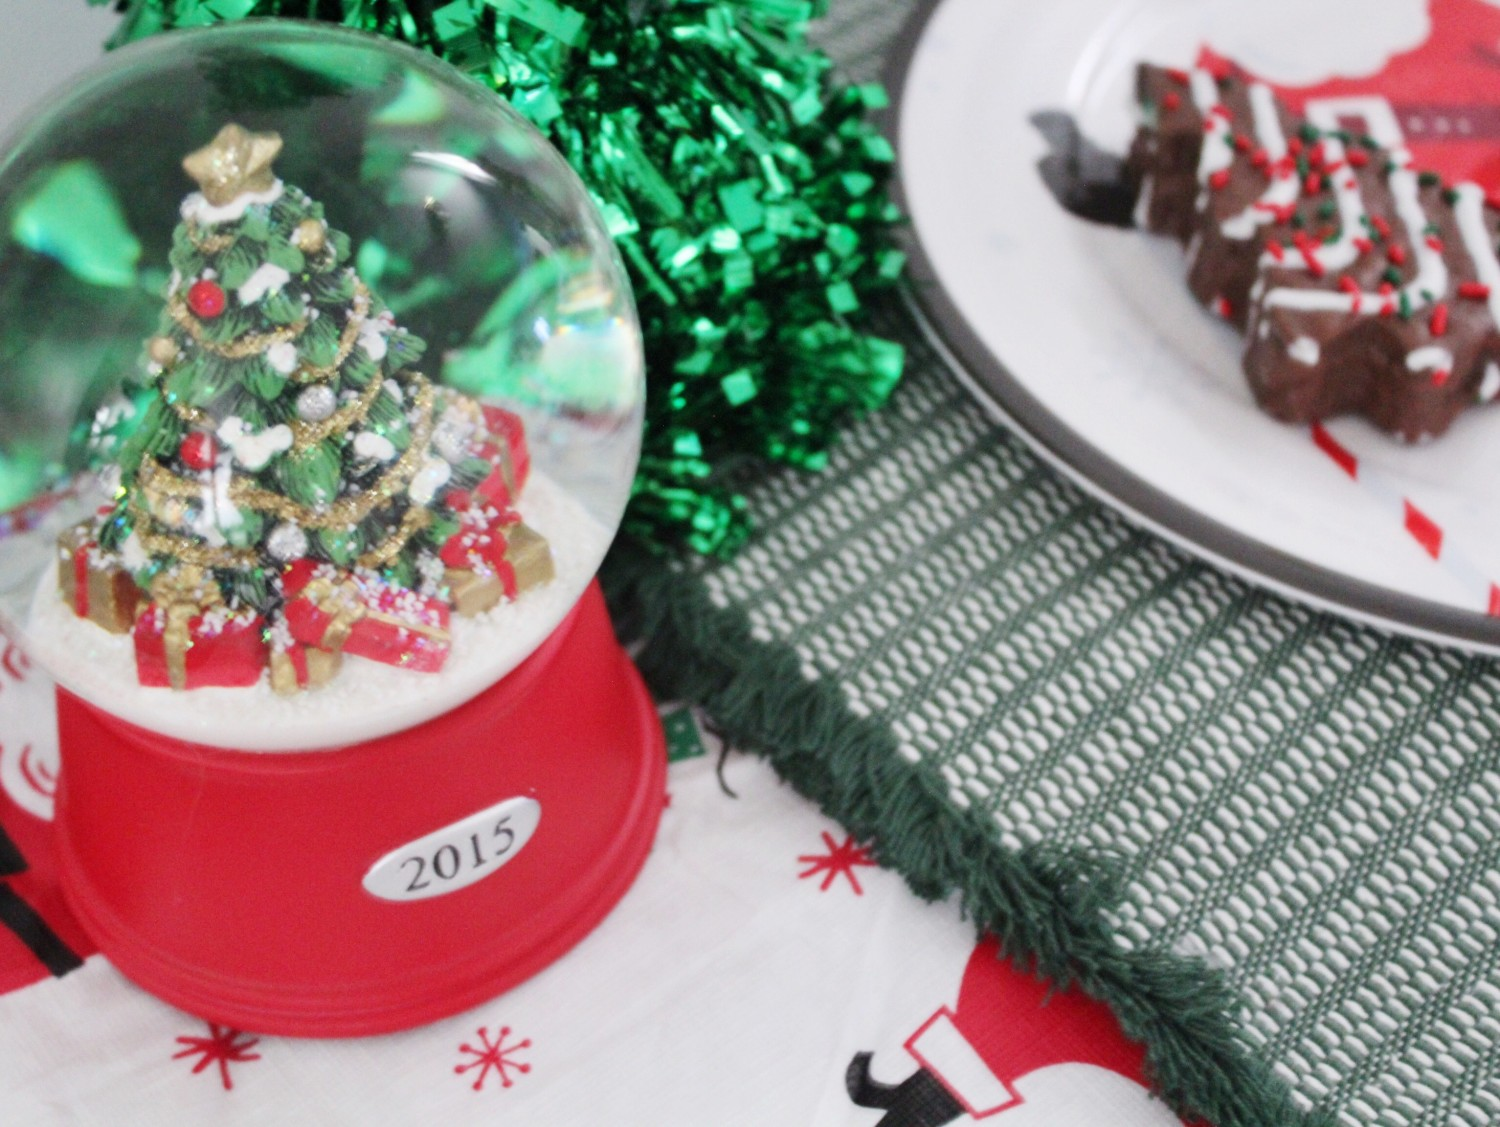 2015 Snow Globe From Target